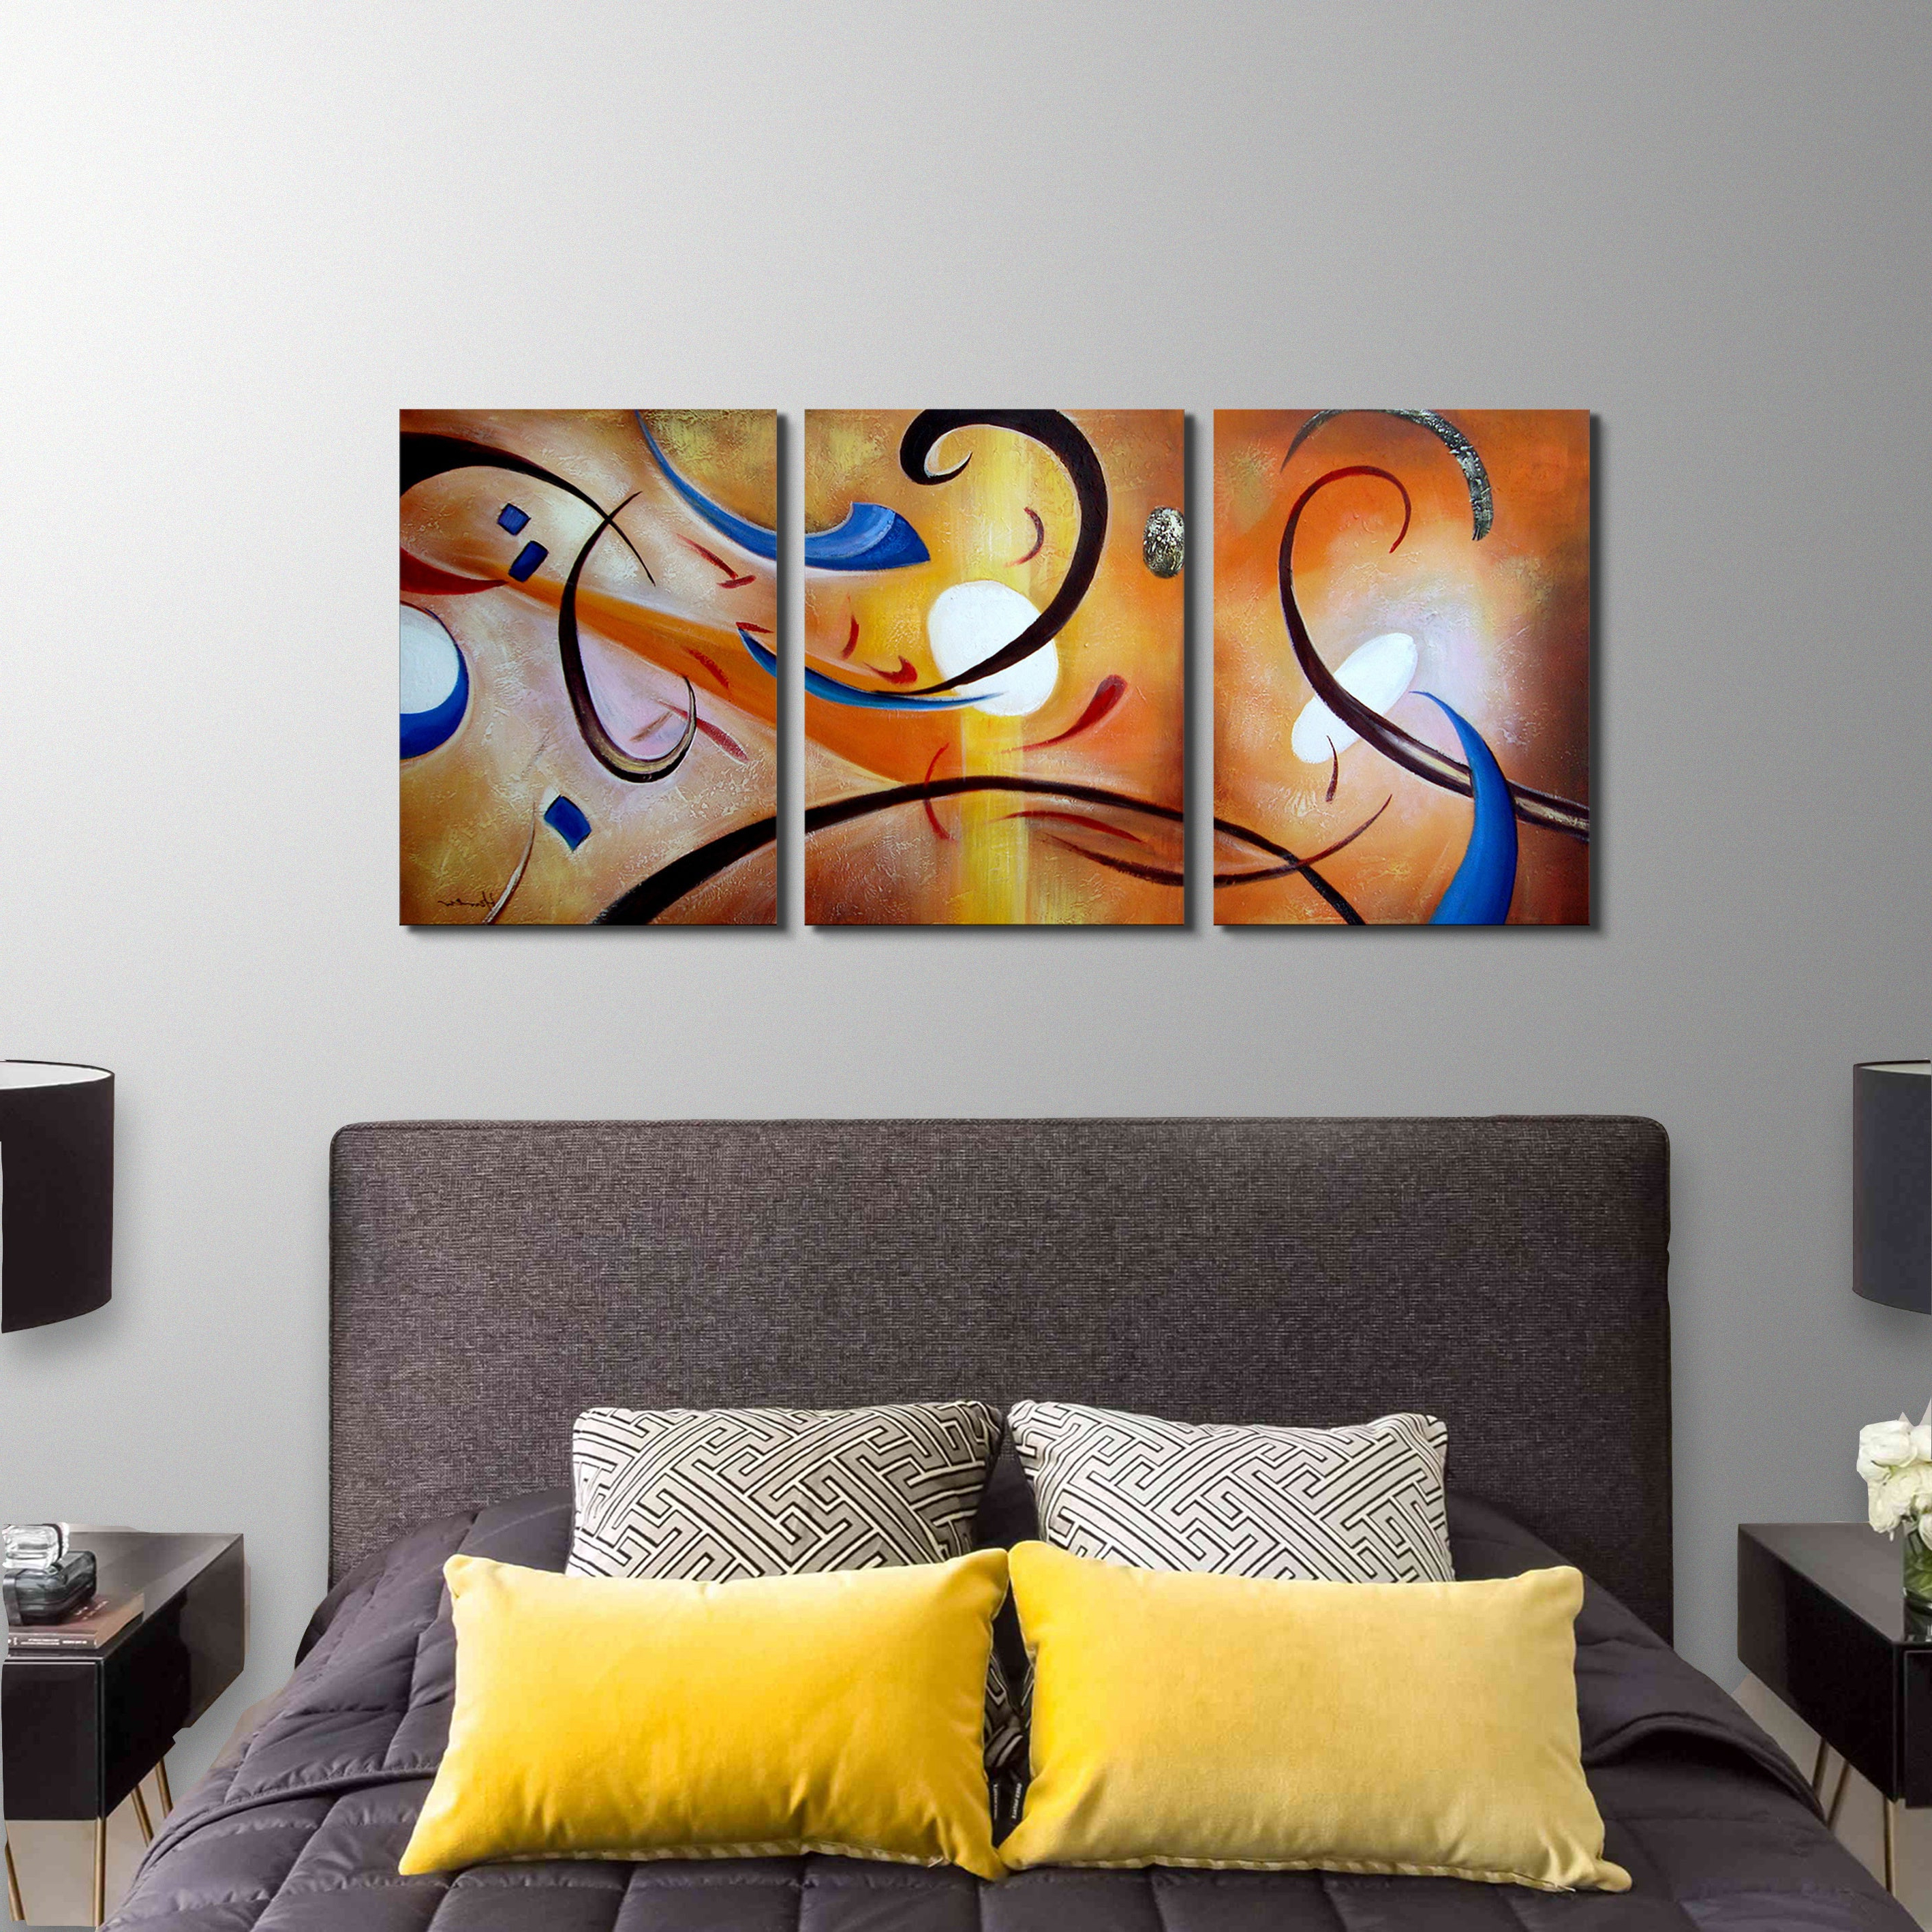 Find Great Art Gallery Deals Shopping At Overstock (View 12 of 20)